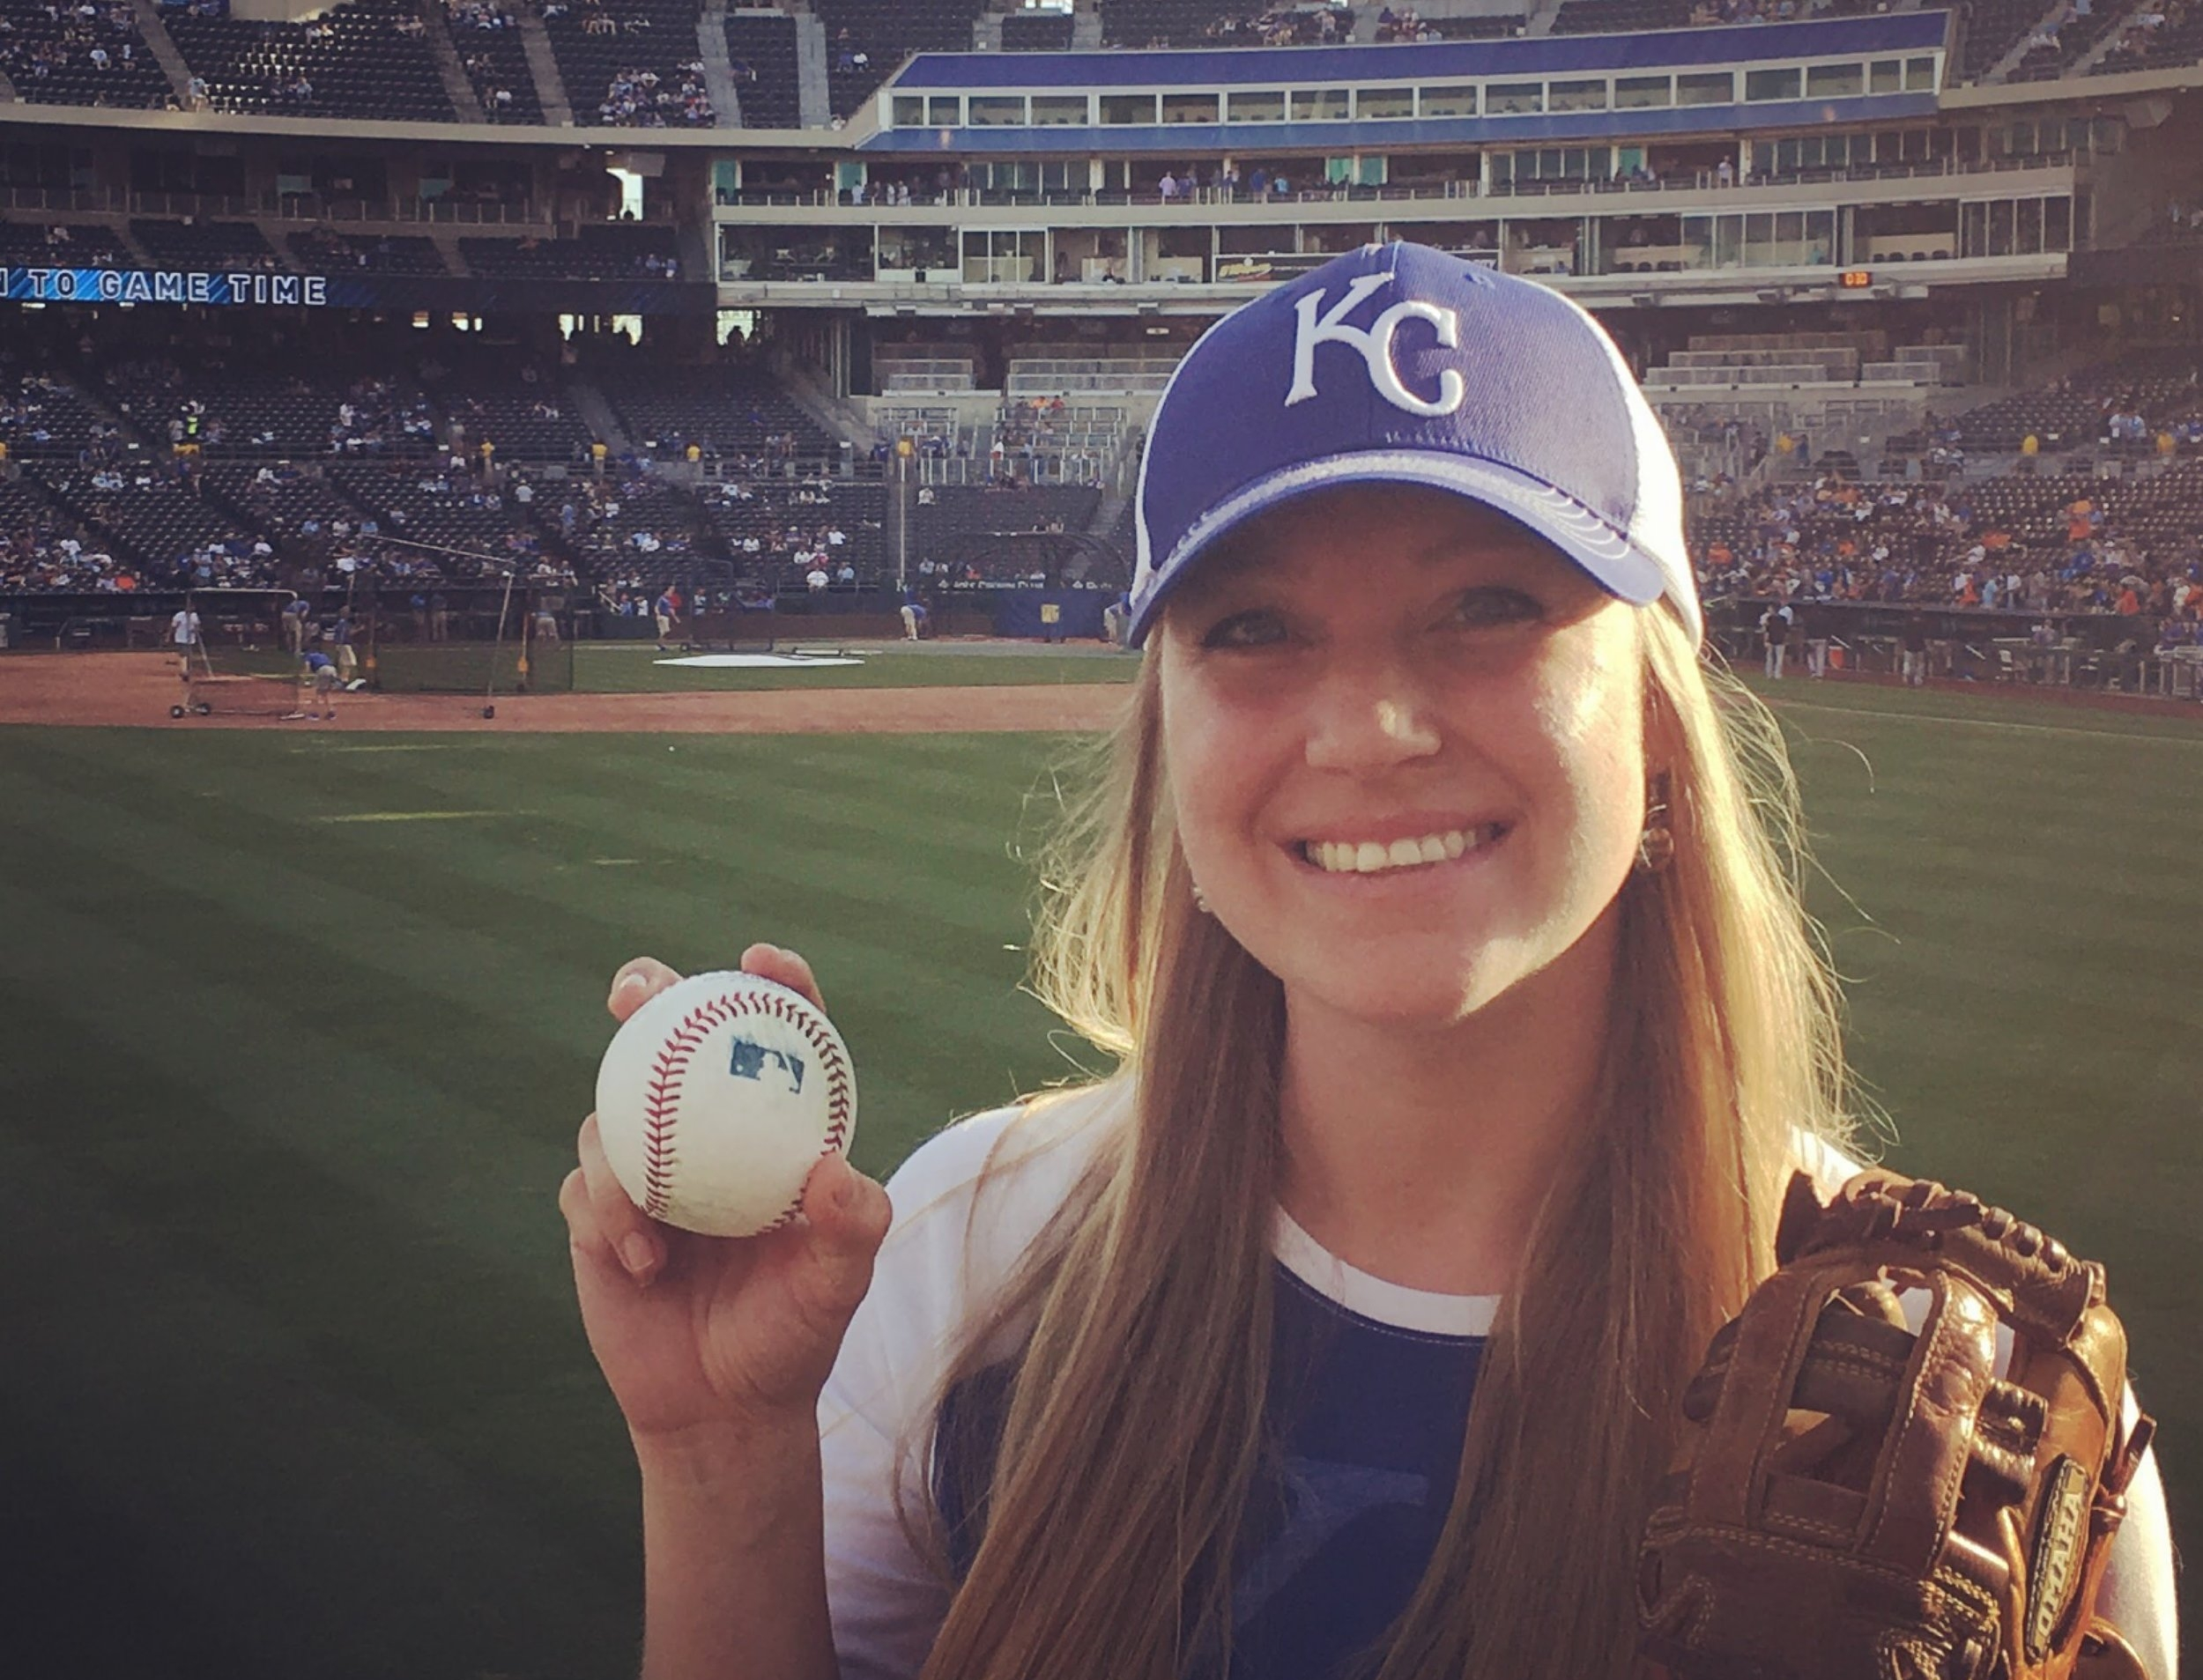 Blair is displaying one of the many batting practice ball she's caught.